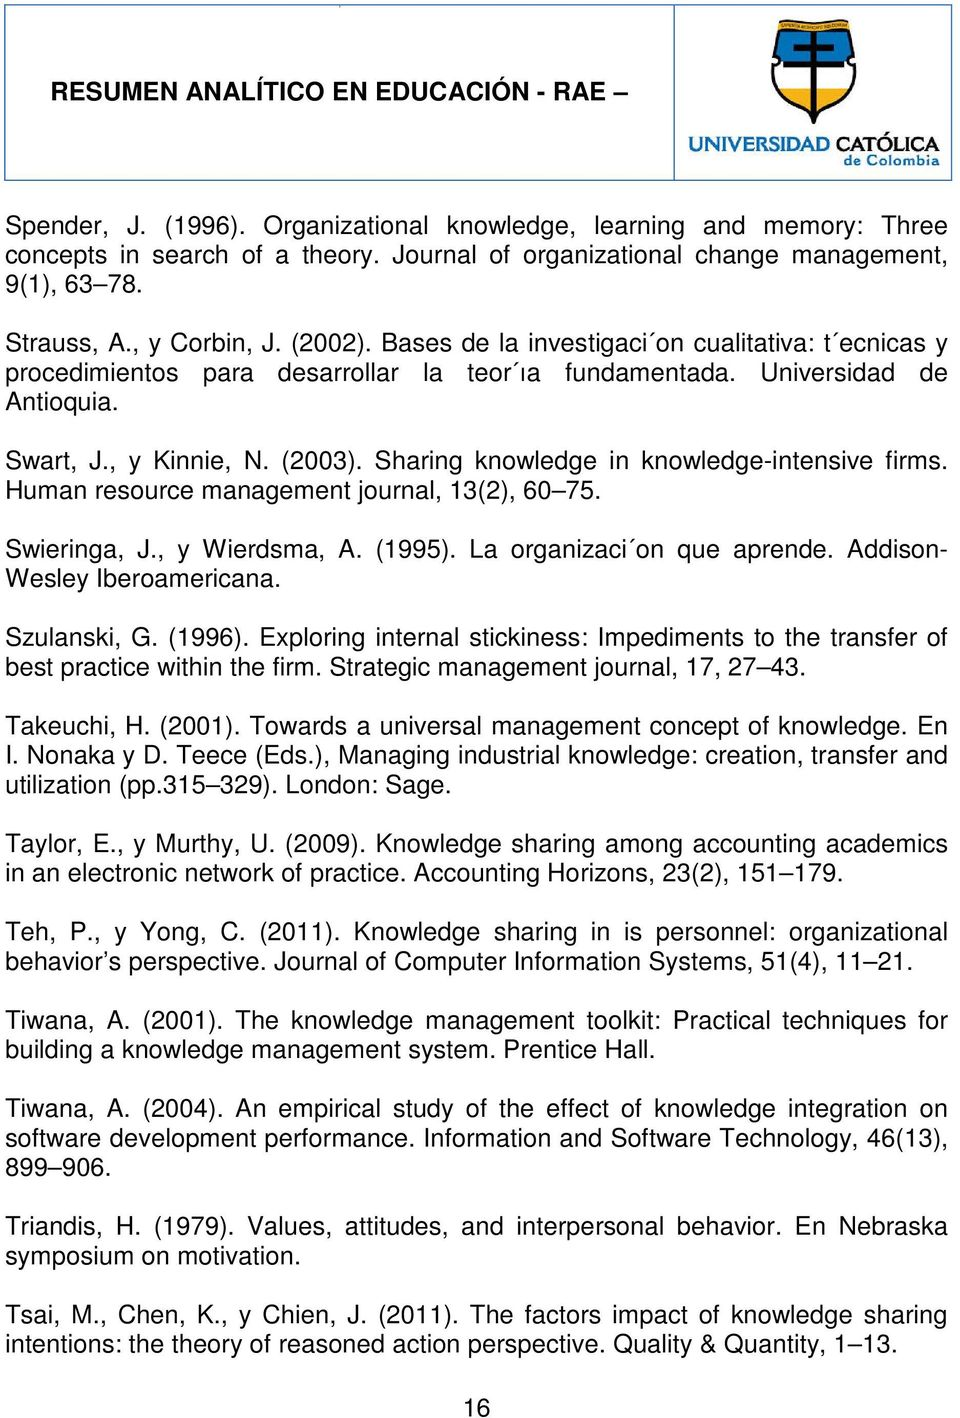 Sharing knowledge in knowledge-intensive firms. Human resource management journal, 13(2), 60 75. Swieringa, J., y Wierdsma, A. (1995). La organizaci on que aprende. Addison- Wesley Iberoamericana.